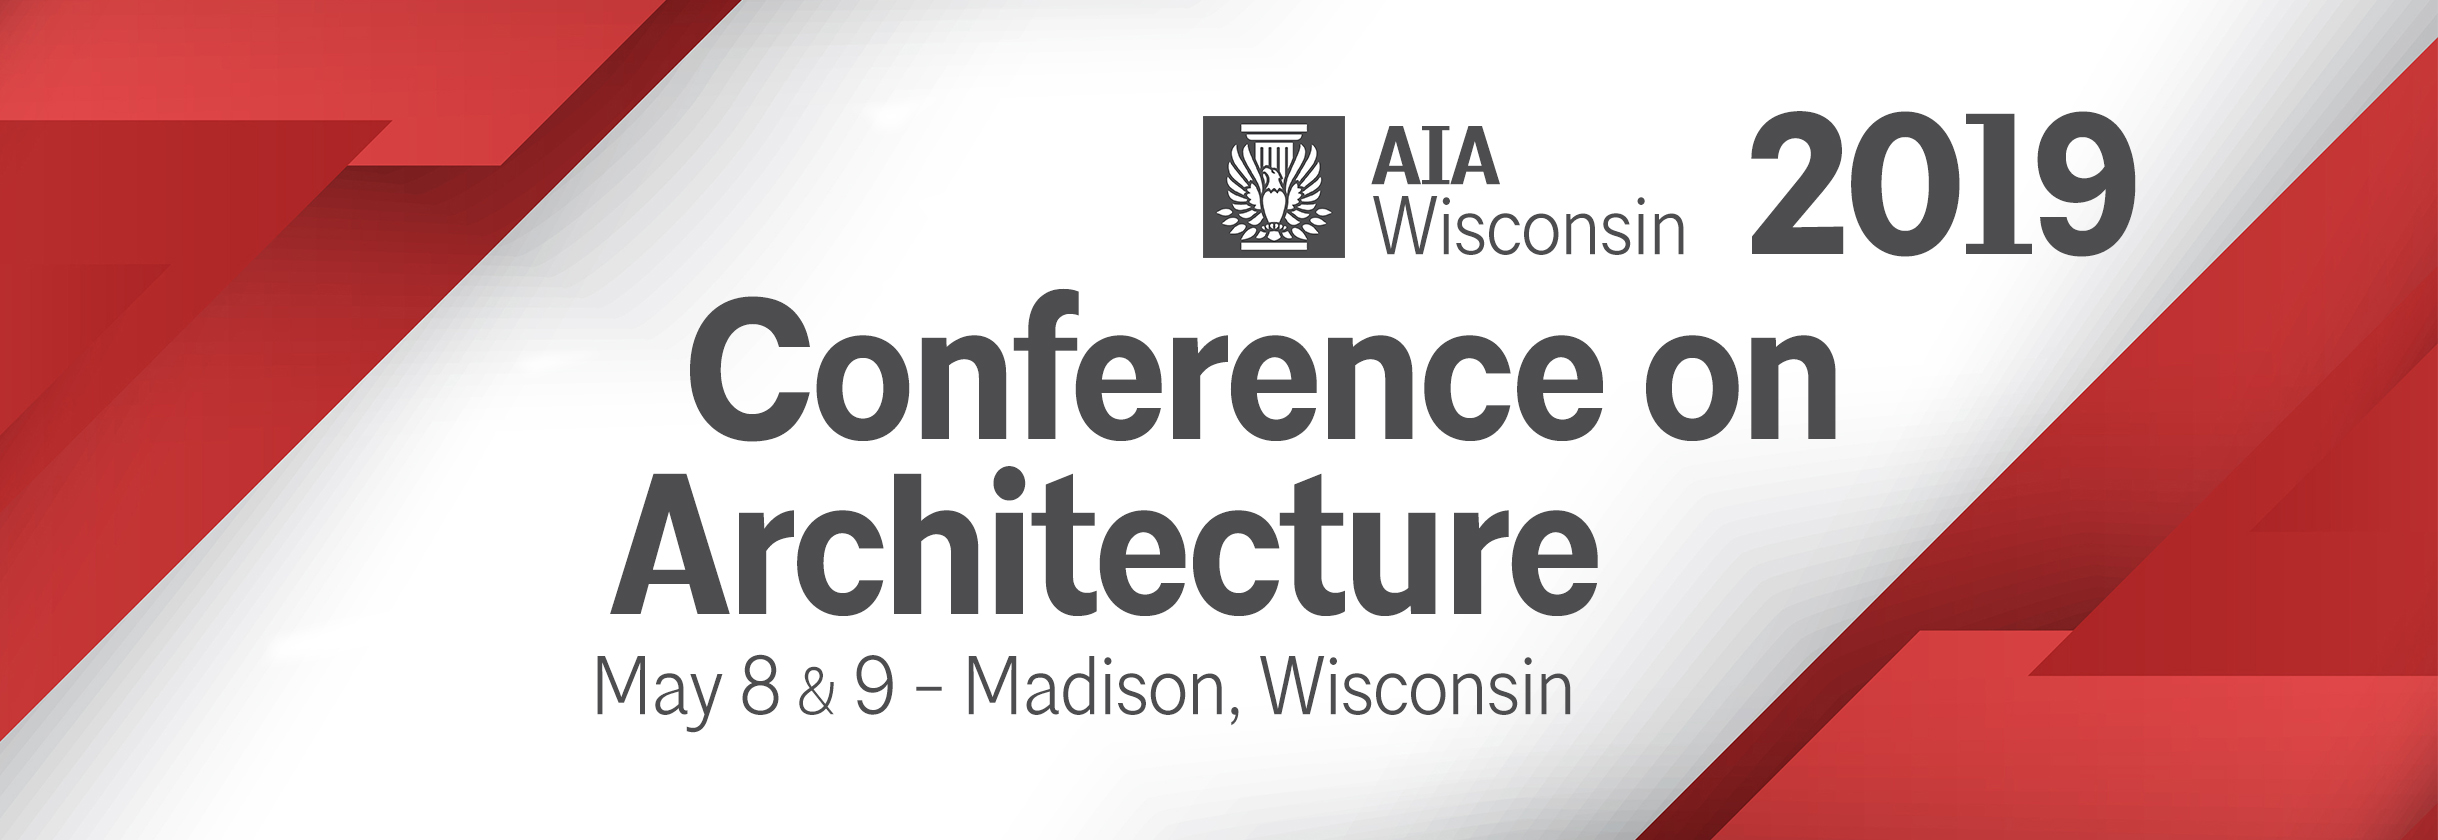 AIA Wisconsin 2019 Conference on Architecture